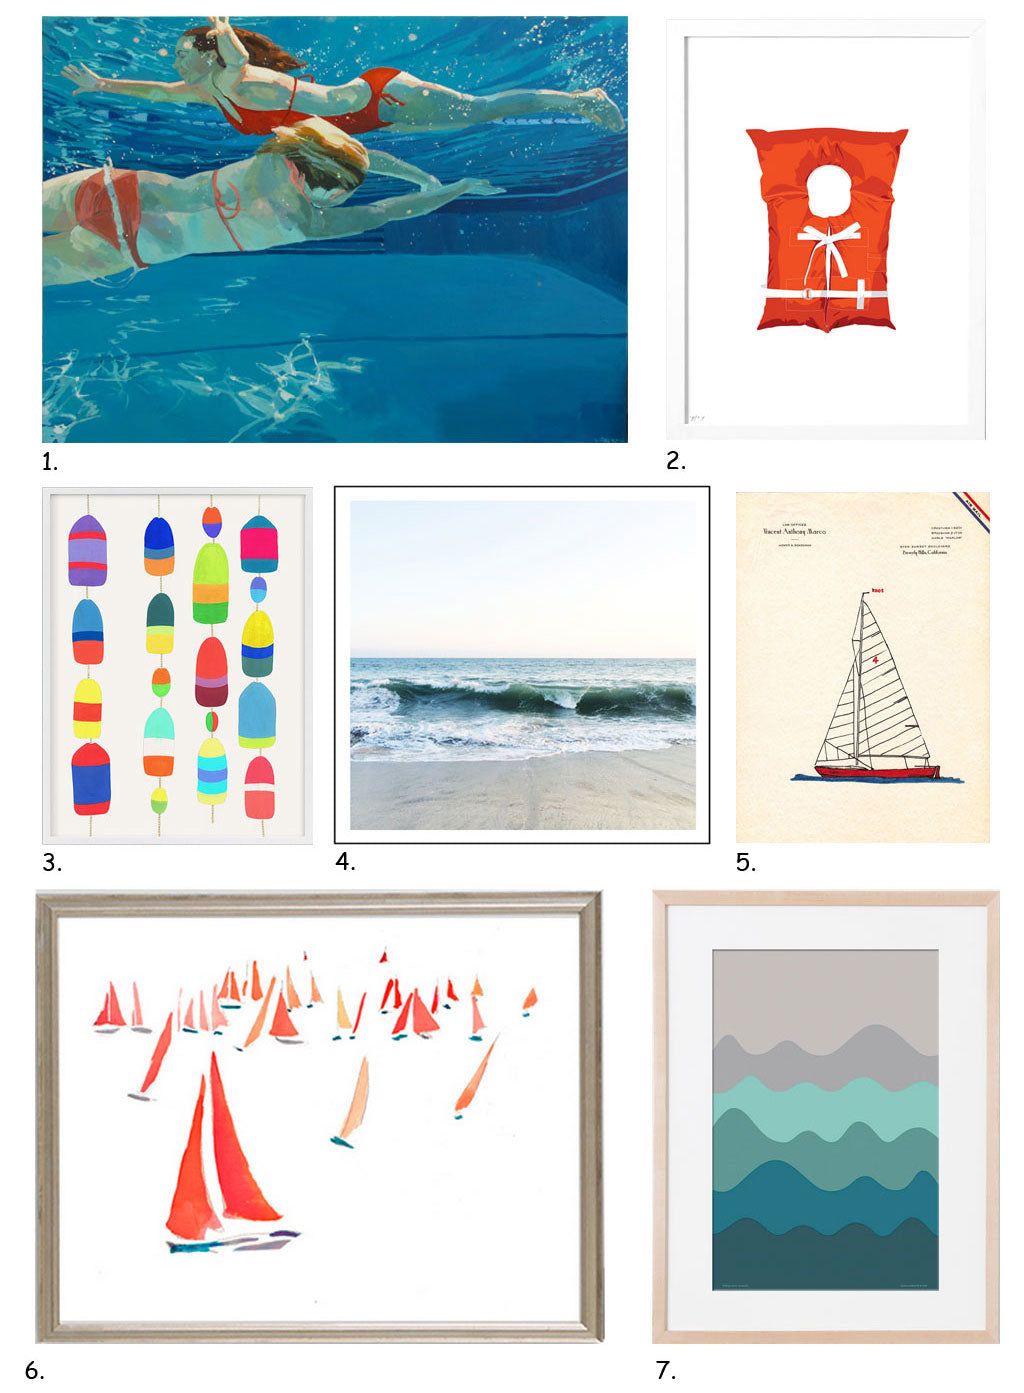 Nautical Art Gift Guide by Simply Framed, featuring Samantha French, Roo Kee Roo, Jow Studio, Instant Gallery, Honey & Bloom, Daylight Dreams Editions, and Happy Menocal.